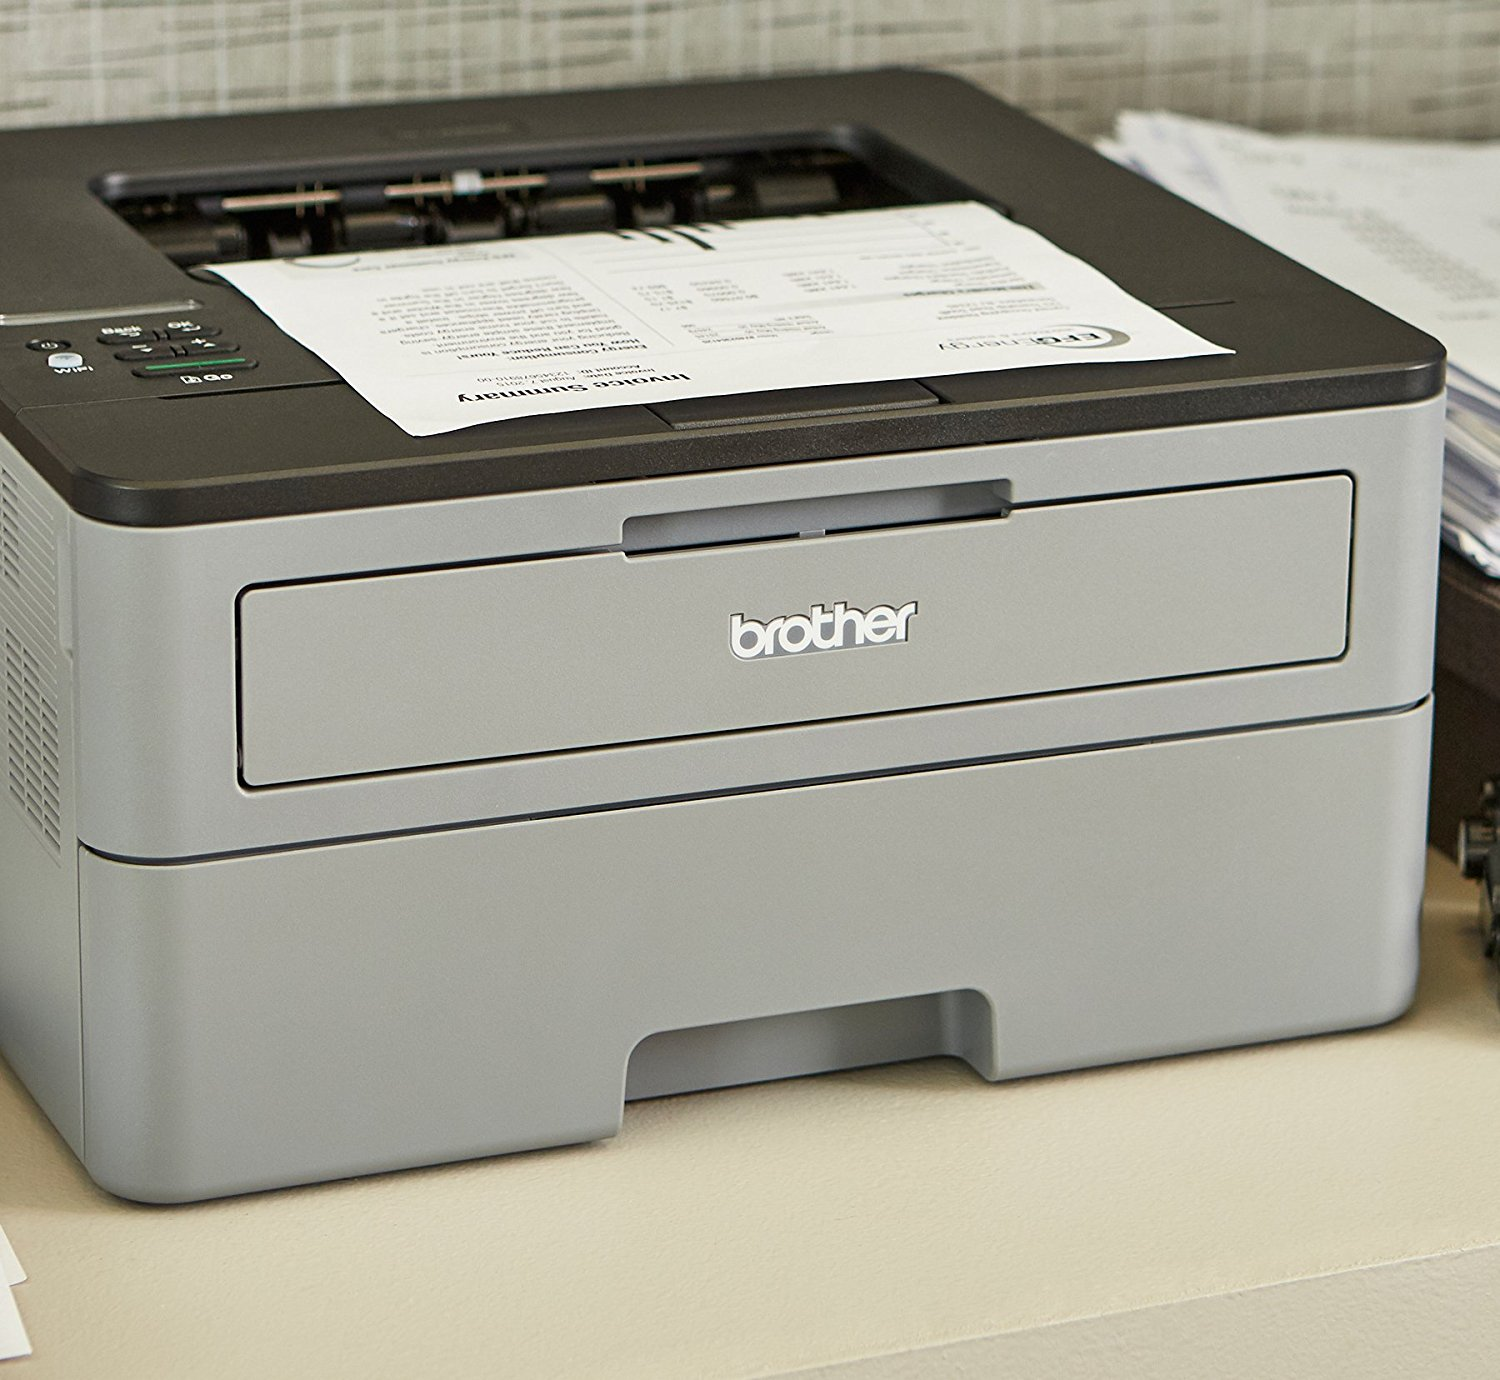 Best printer for office use in 2018